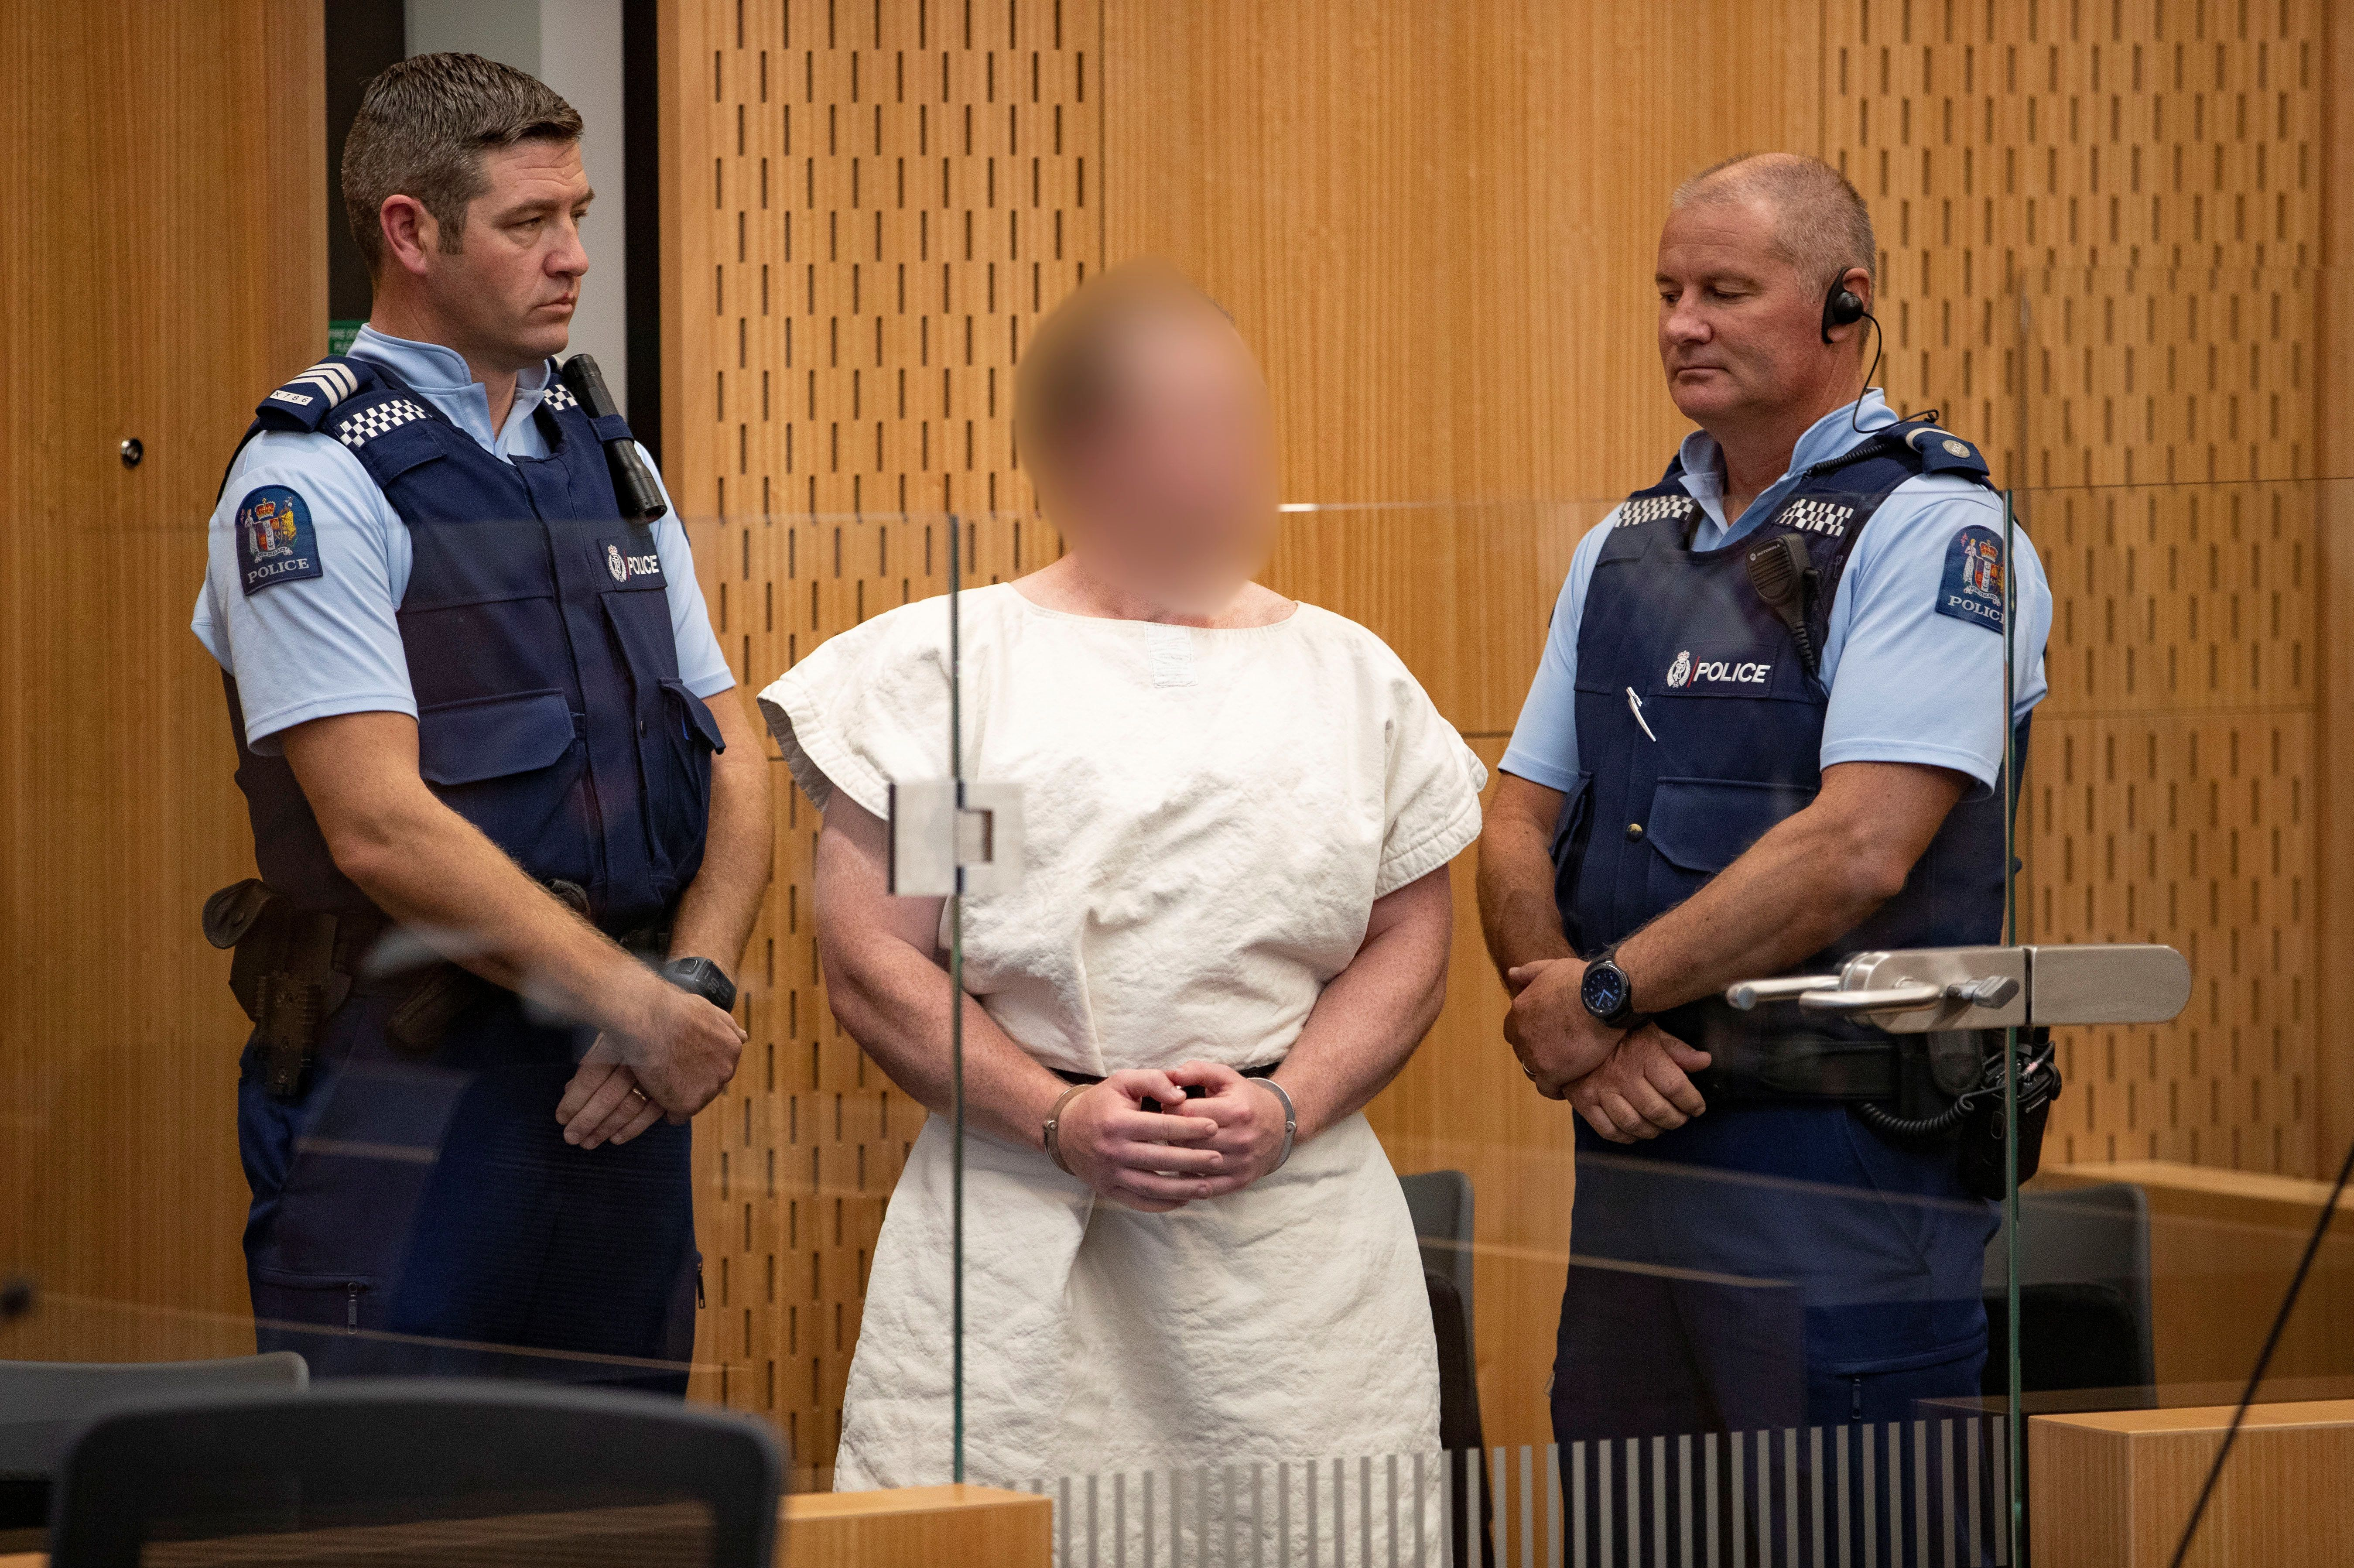 NZ Police Inadvertently Charge Terror Suspect With Killing Woman Who's Alive